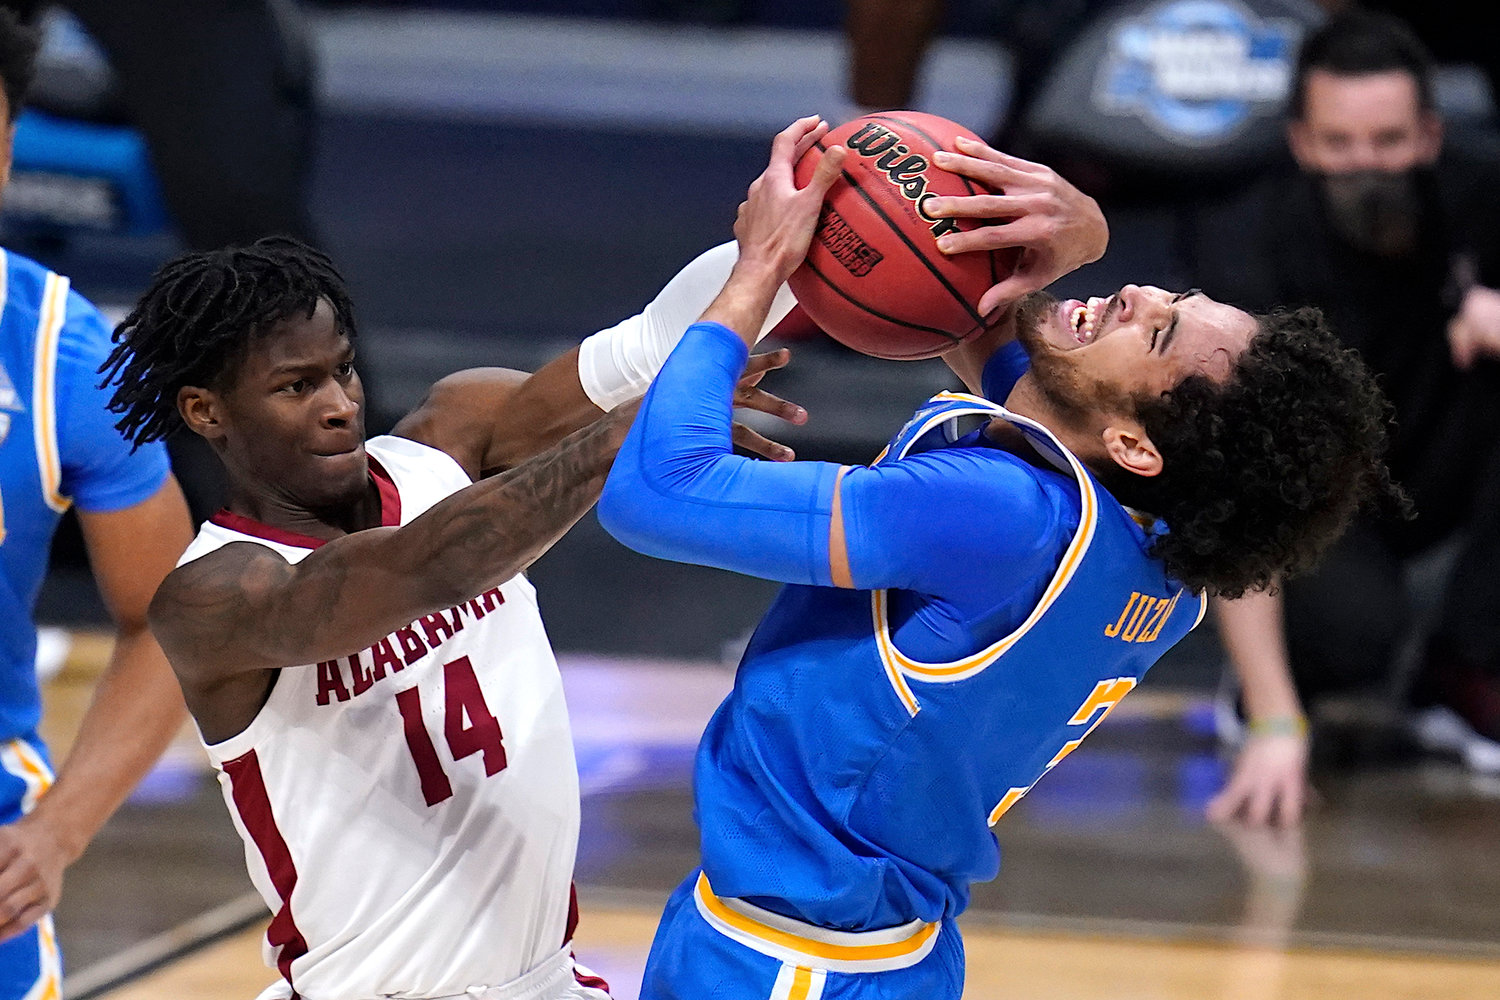 Alabama guard Keon Ellis (14) ties up UCLA guard Johnny Juzang (3) dueing their Sweet 16 game in the NCAA men's college basketball tournament at Hinkle Fieldhouse in Indianapolis on Sunday. UCLA won 88-78 in overtime.